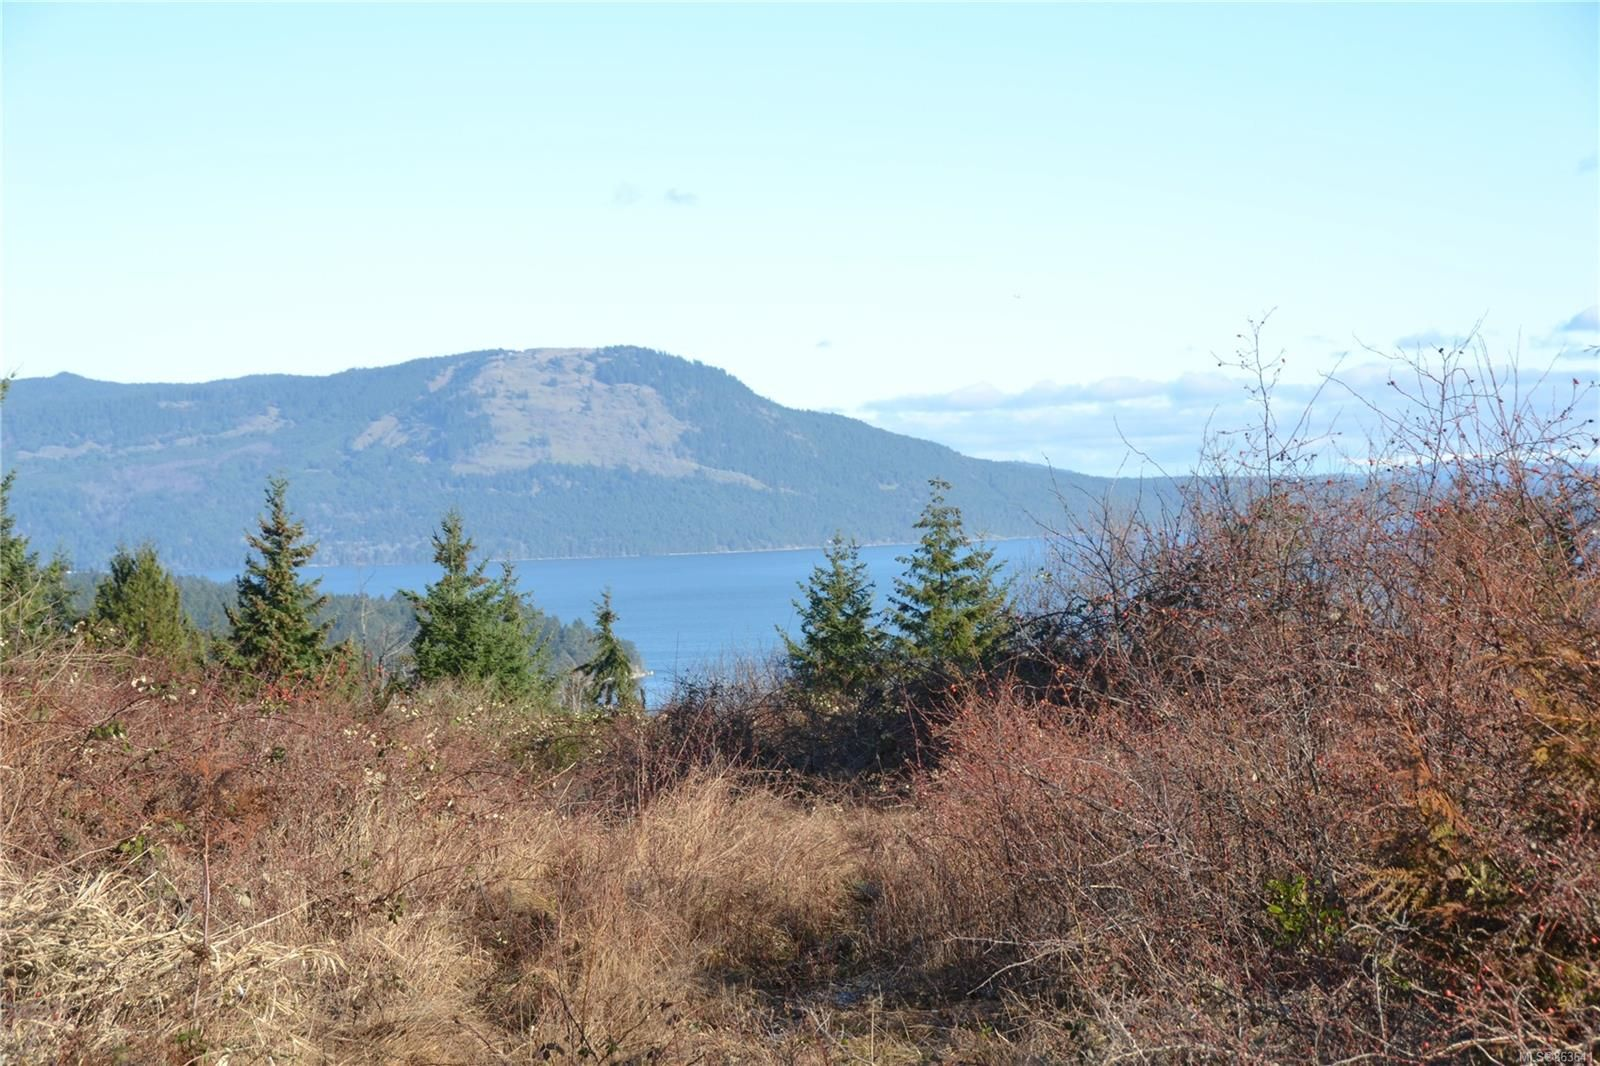 Main Photo: 9 Butterfield Rd in : ML Mill Bay Land for sale (Malahat & Area)  : MLS®# 863641